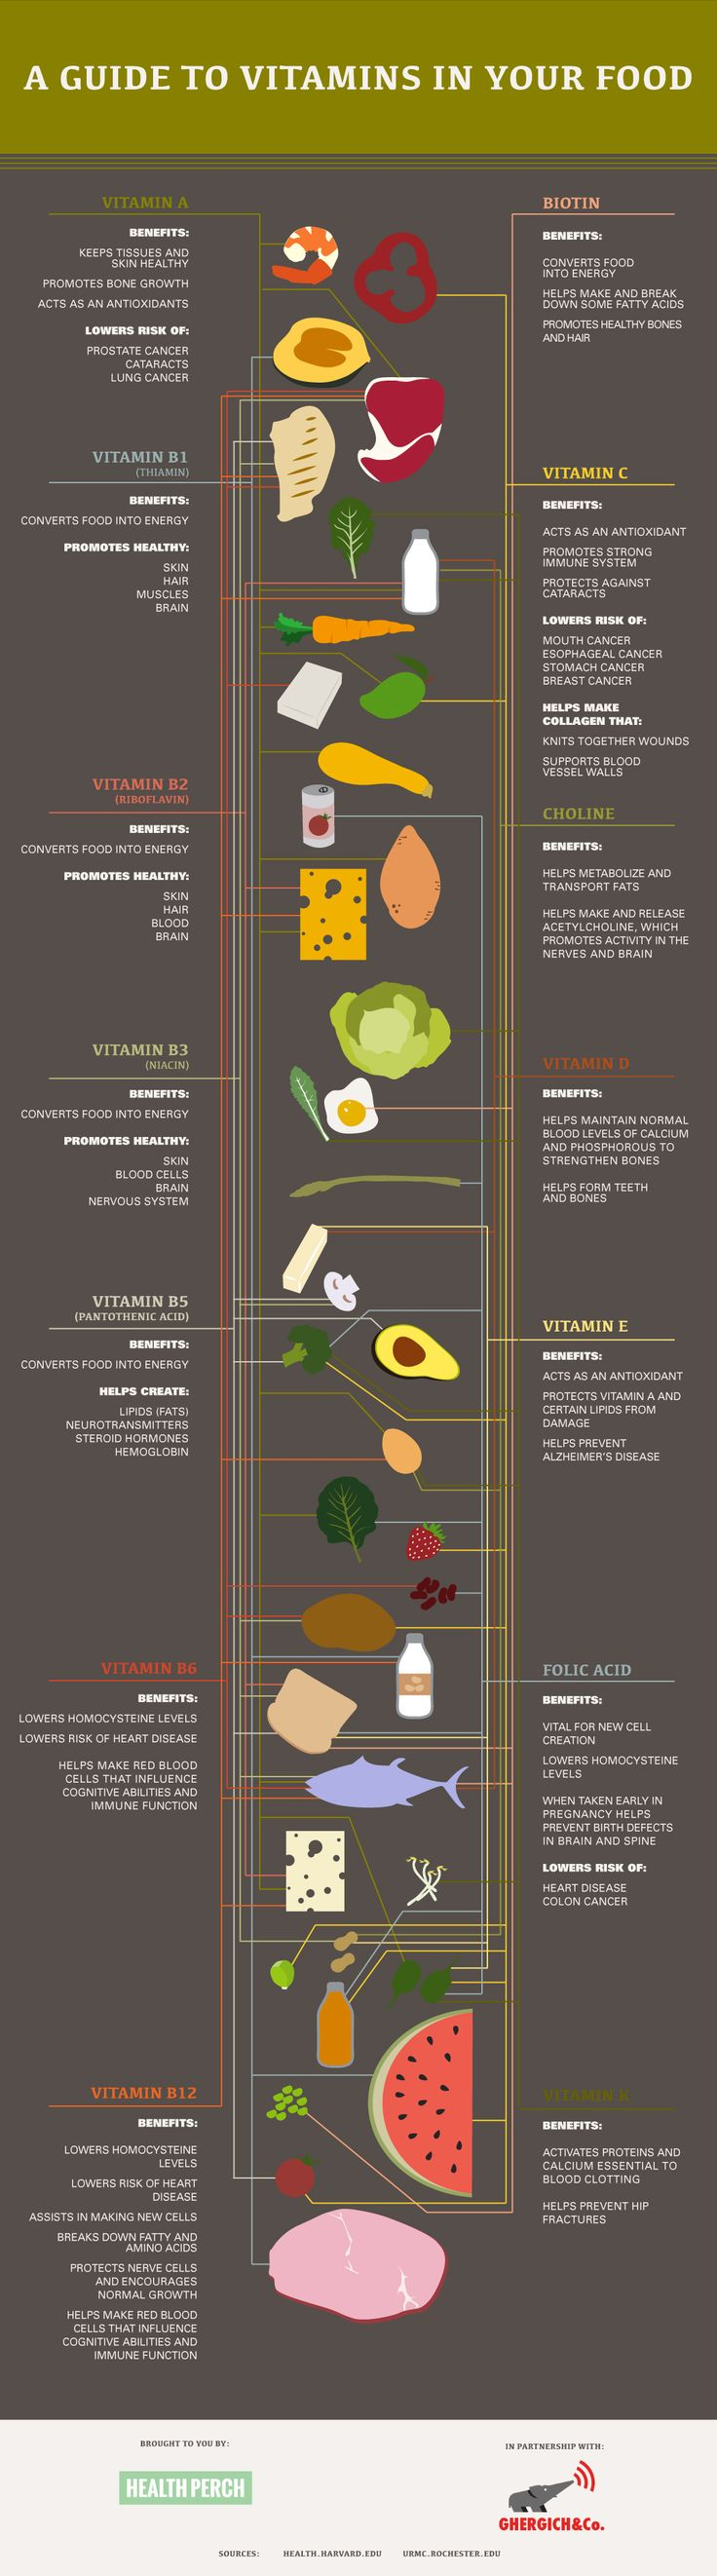 Your guide to getting your vitamins from food